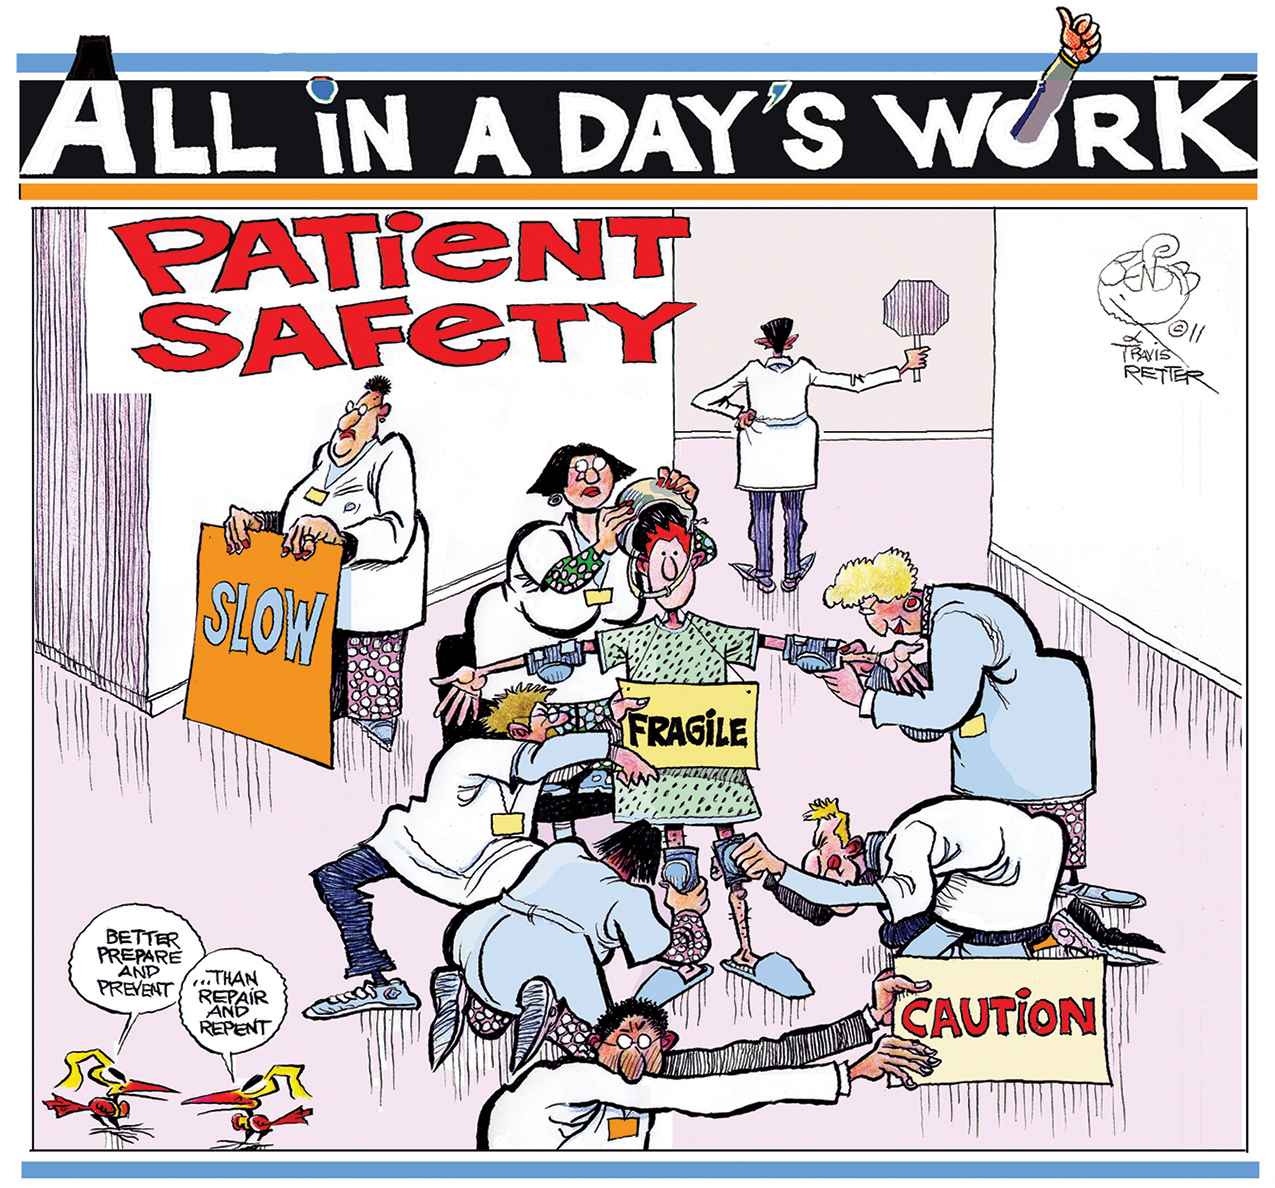 Art Clip National Safety Patient